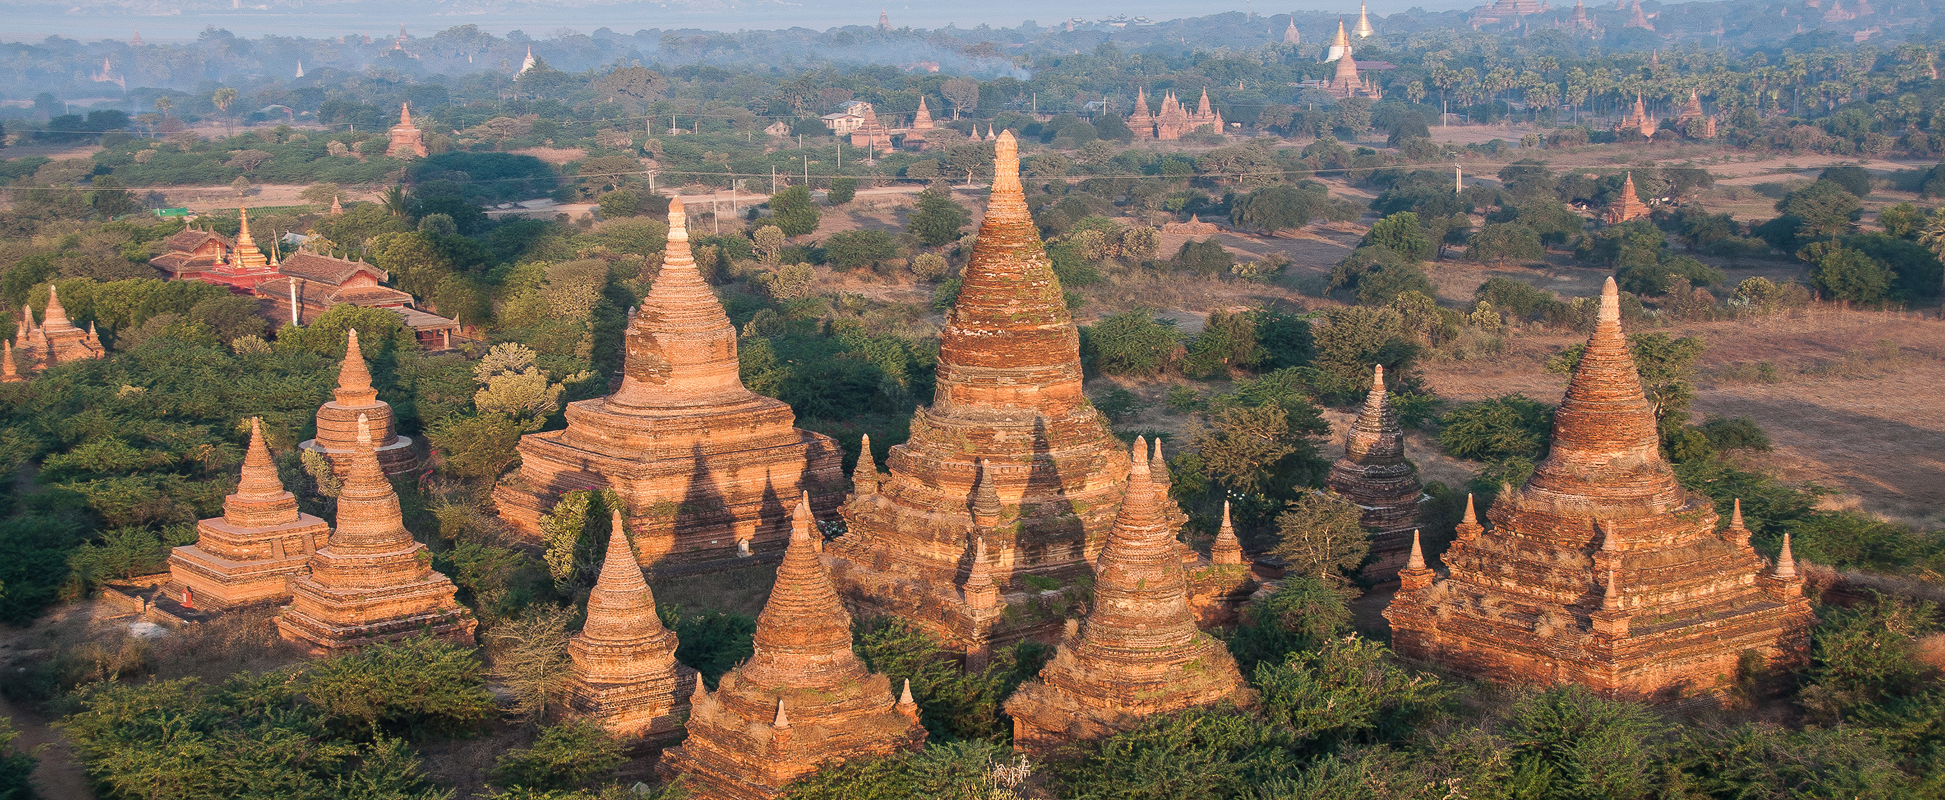 Ancient Bagan photographed from a hot air balloon